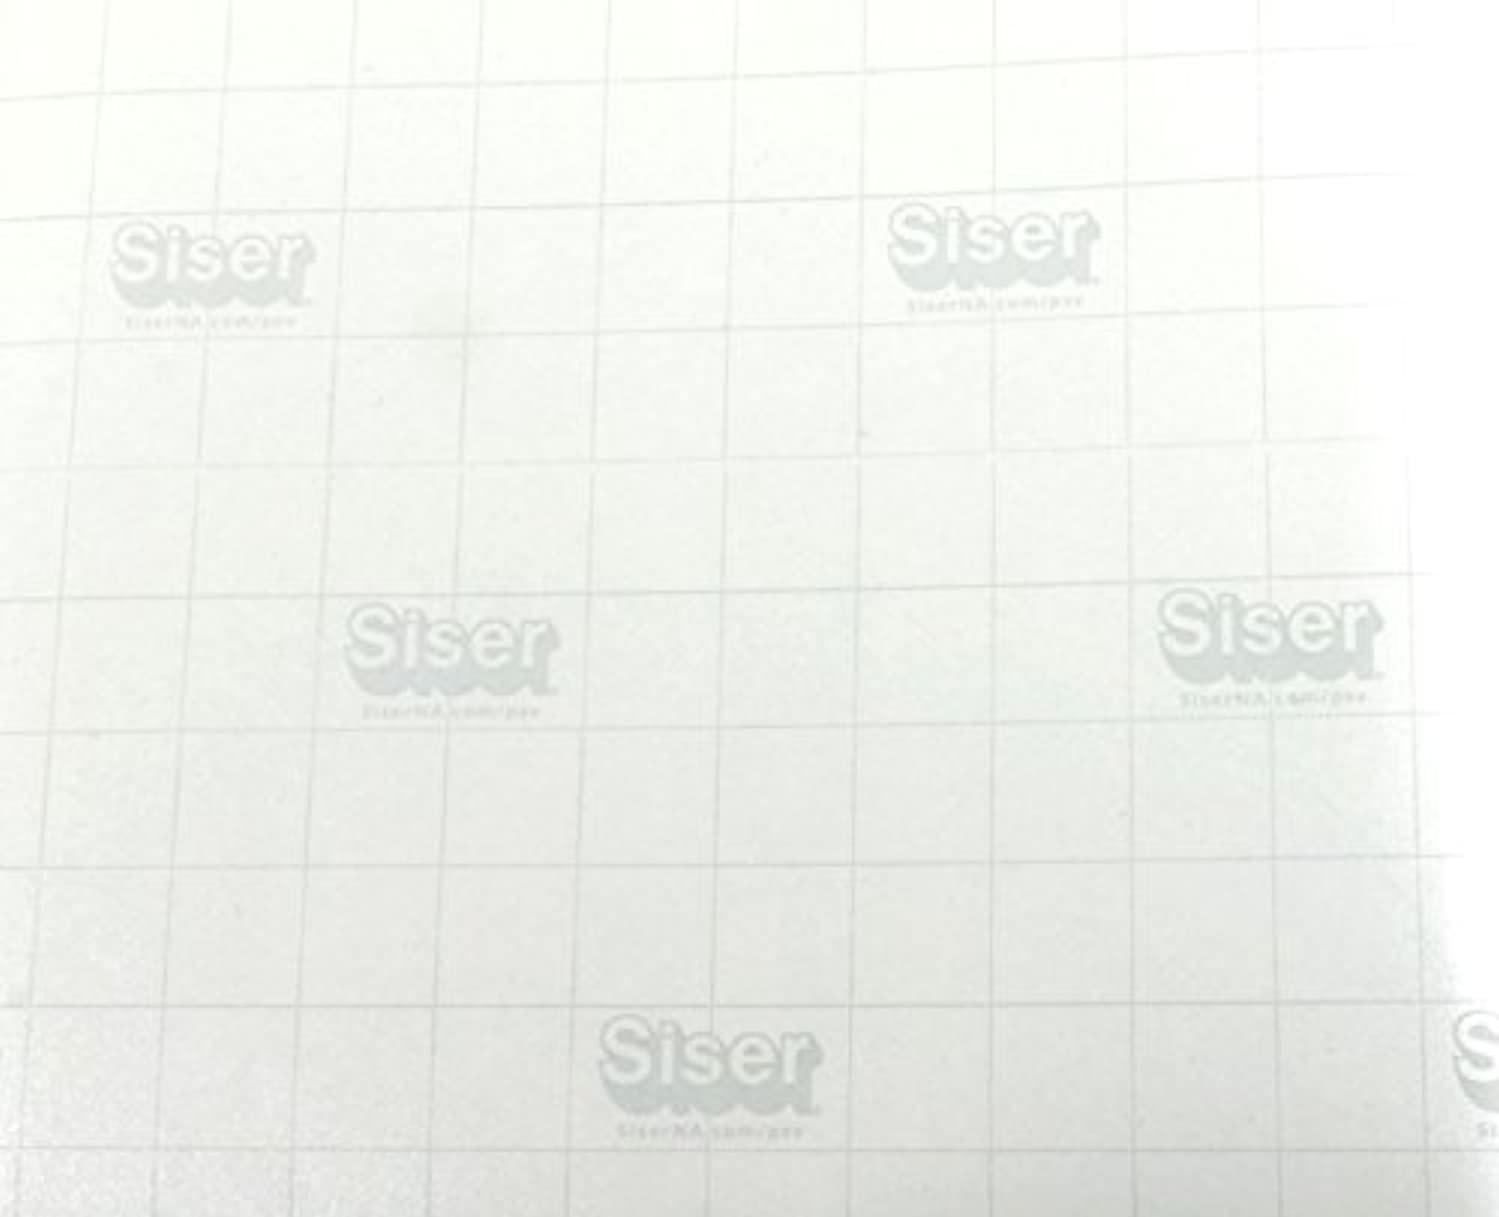 Siser EasyPSV Transfer Tape Paper Clear with Grid for Self Adhesive Craft Vinyl (12